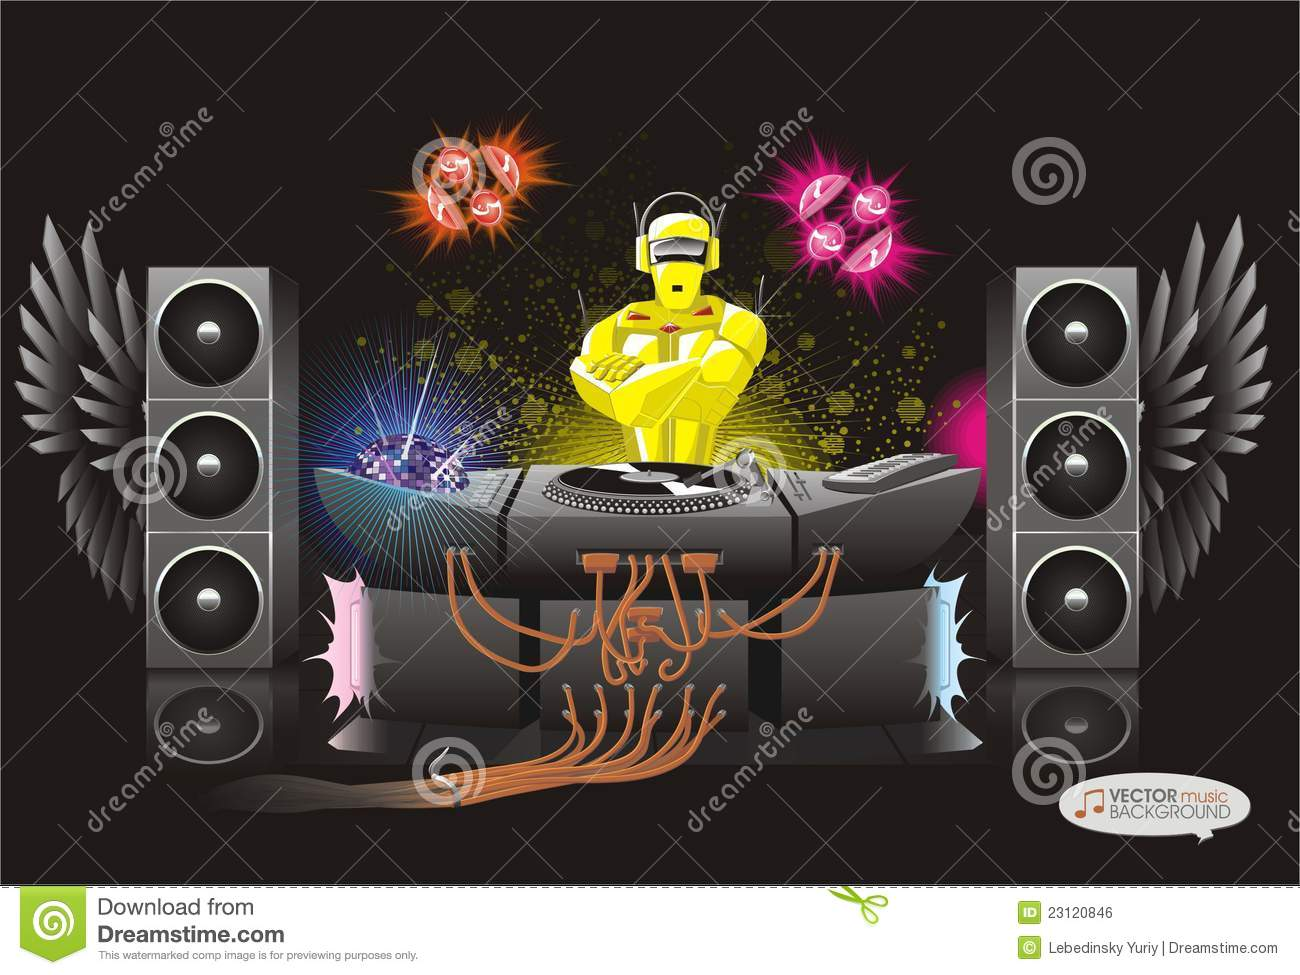 Abstract Music Background Dj Rodot Royalty Free Stock